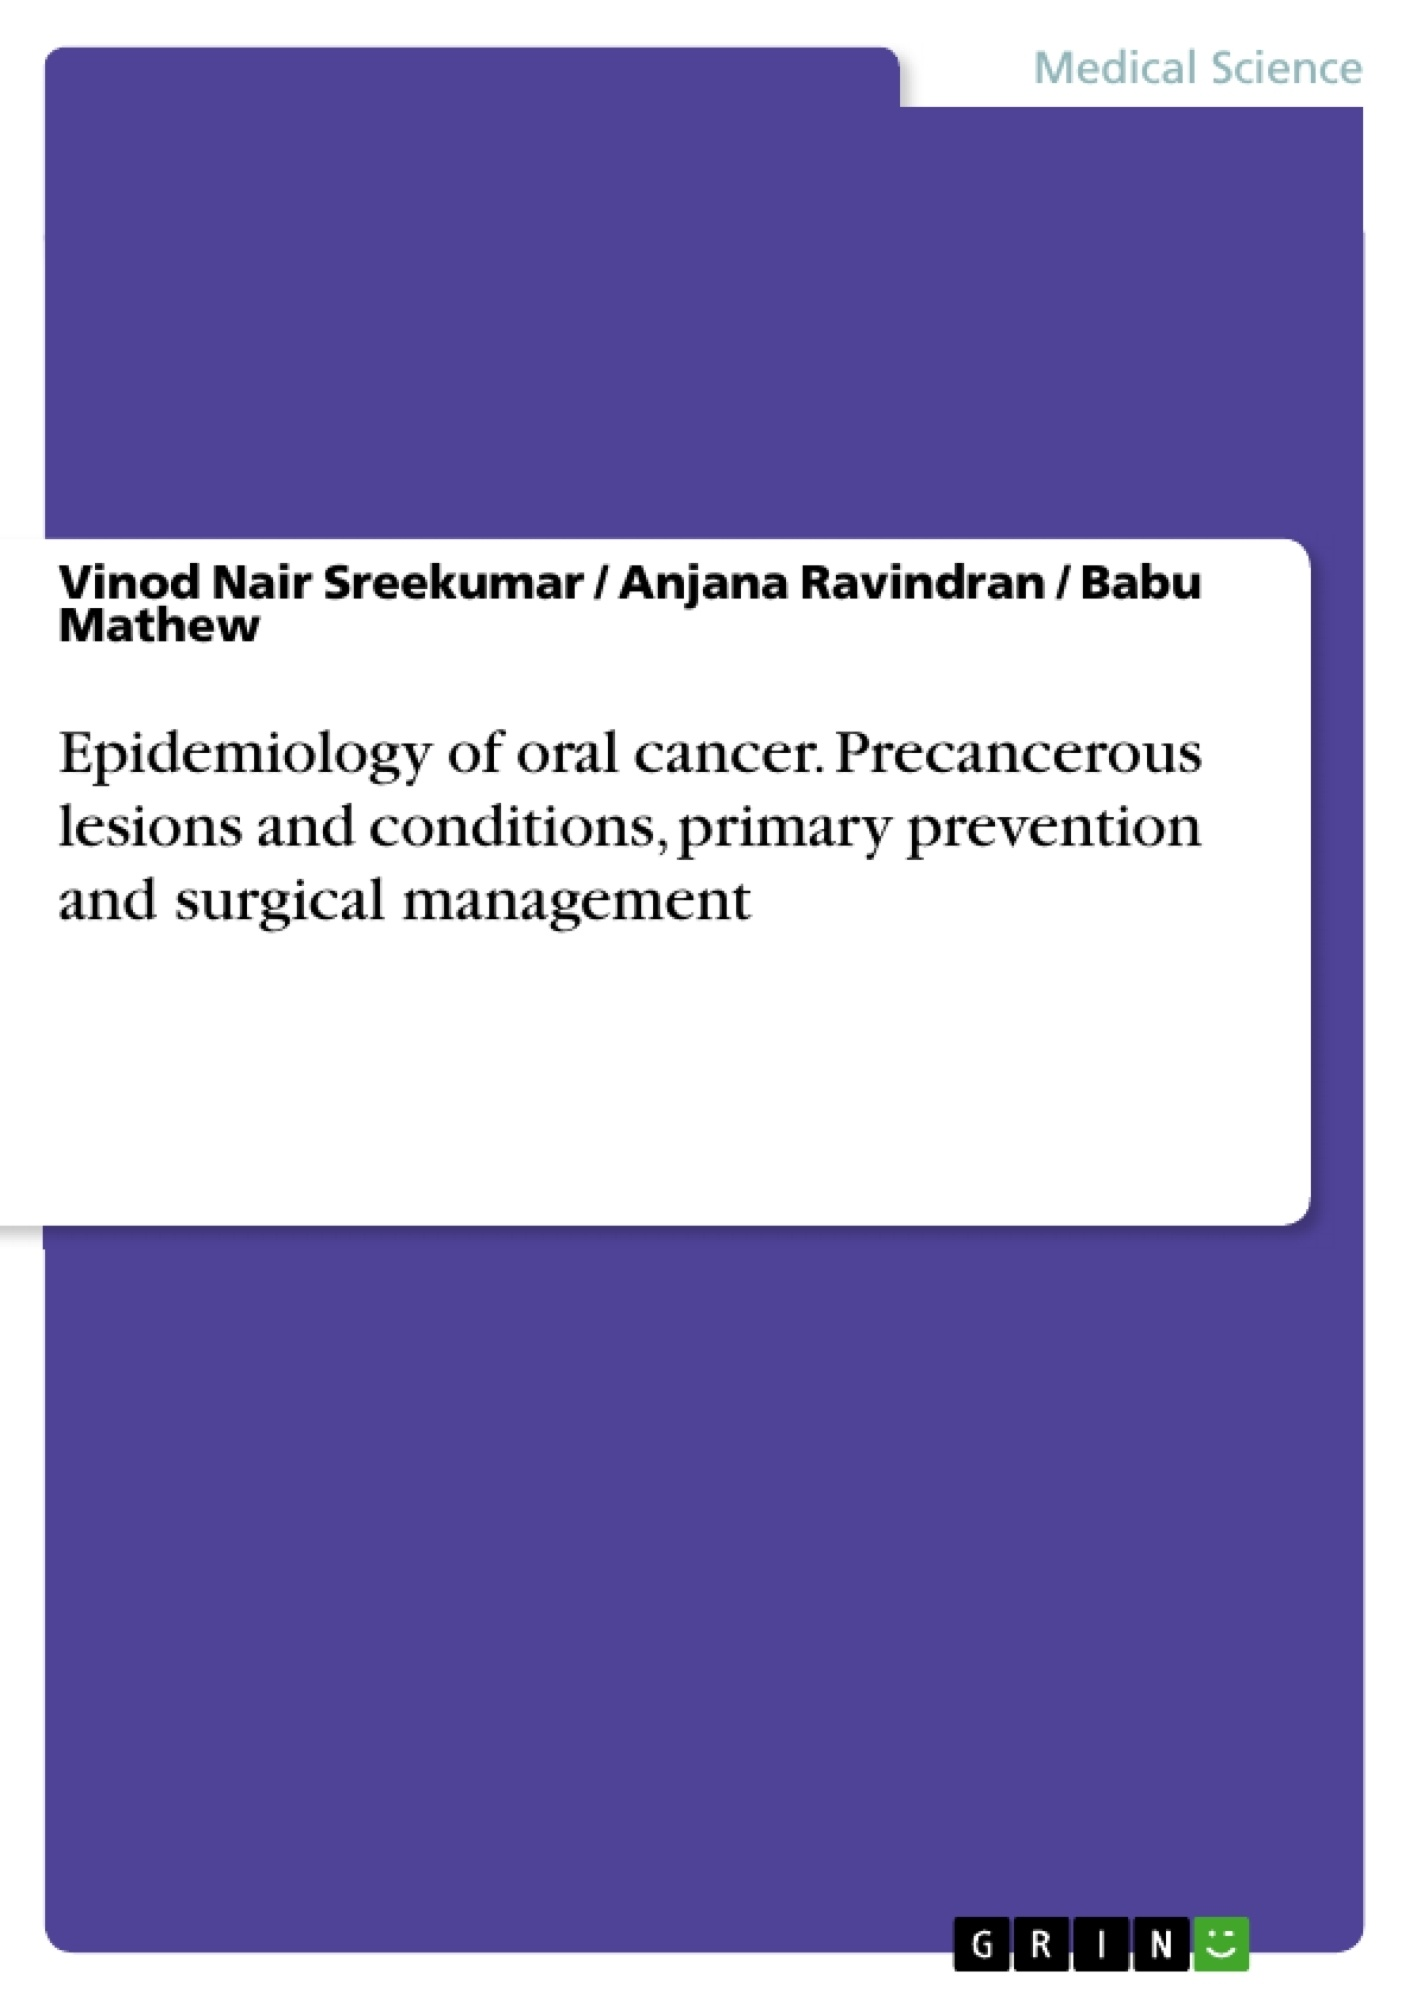 GRIN - Epidemiology of oral cancer  Precancerous lesions and conditions,  primary prevention and surgical management